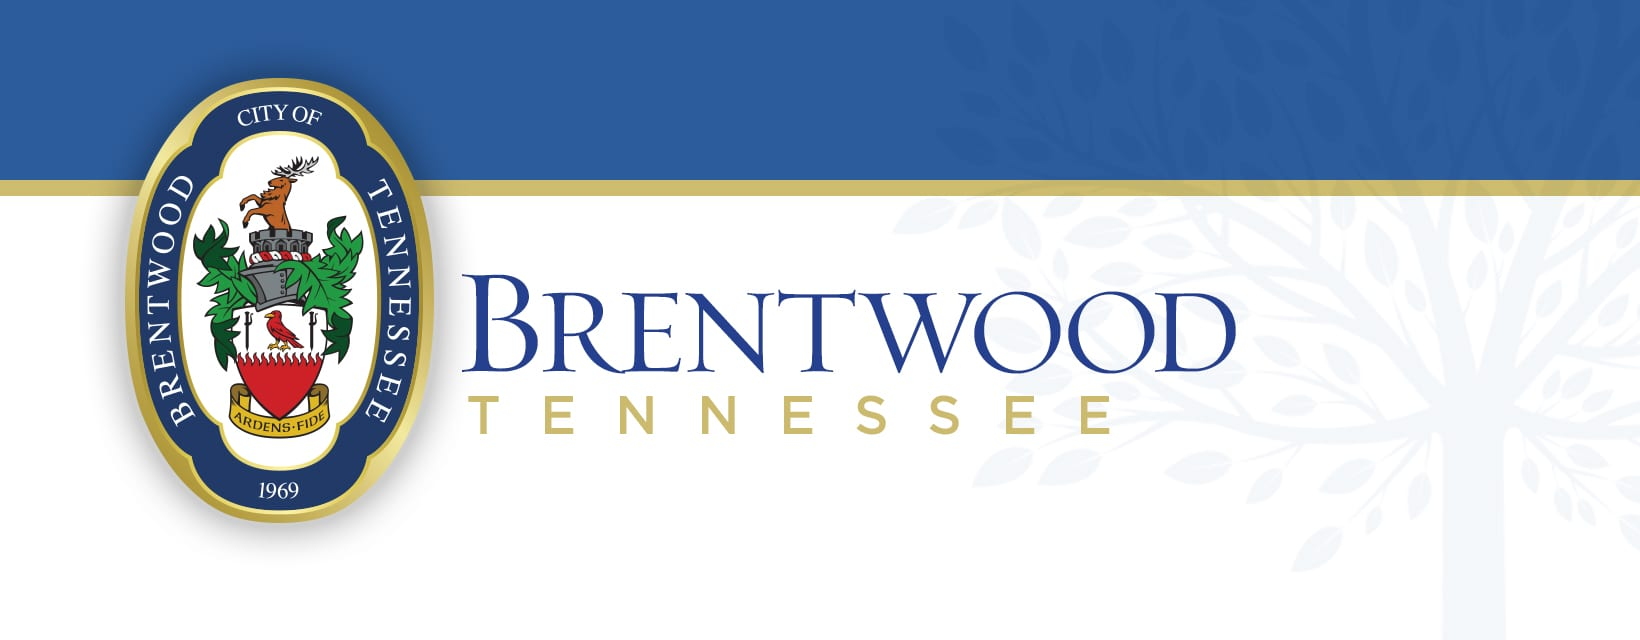 City-of-brentwood